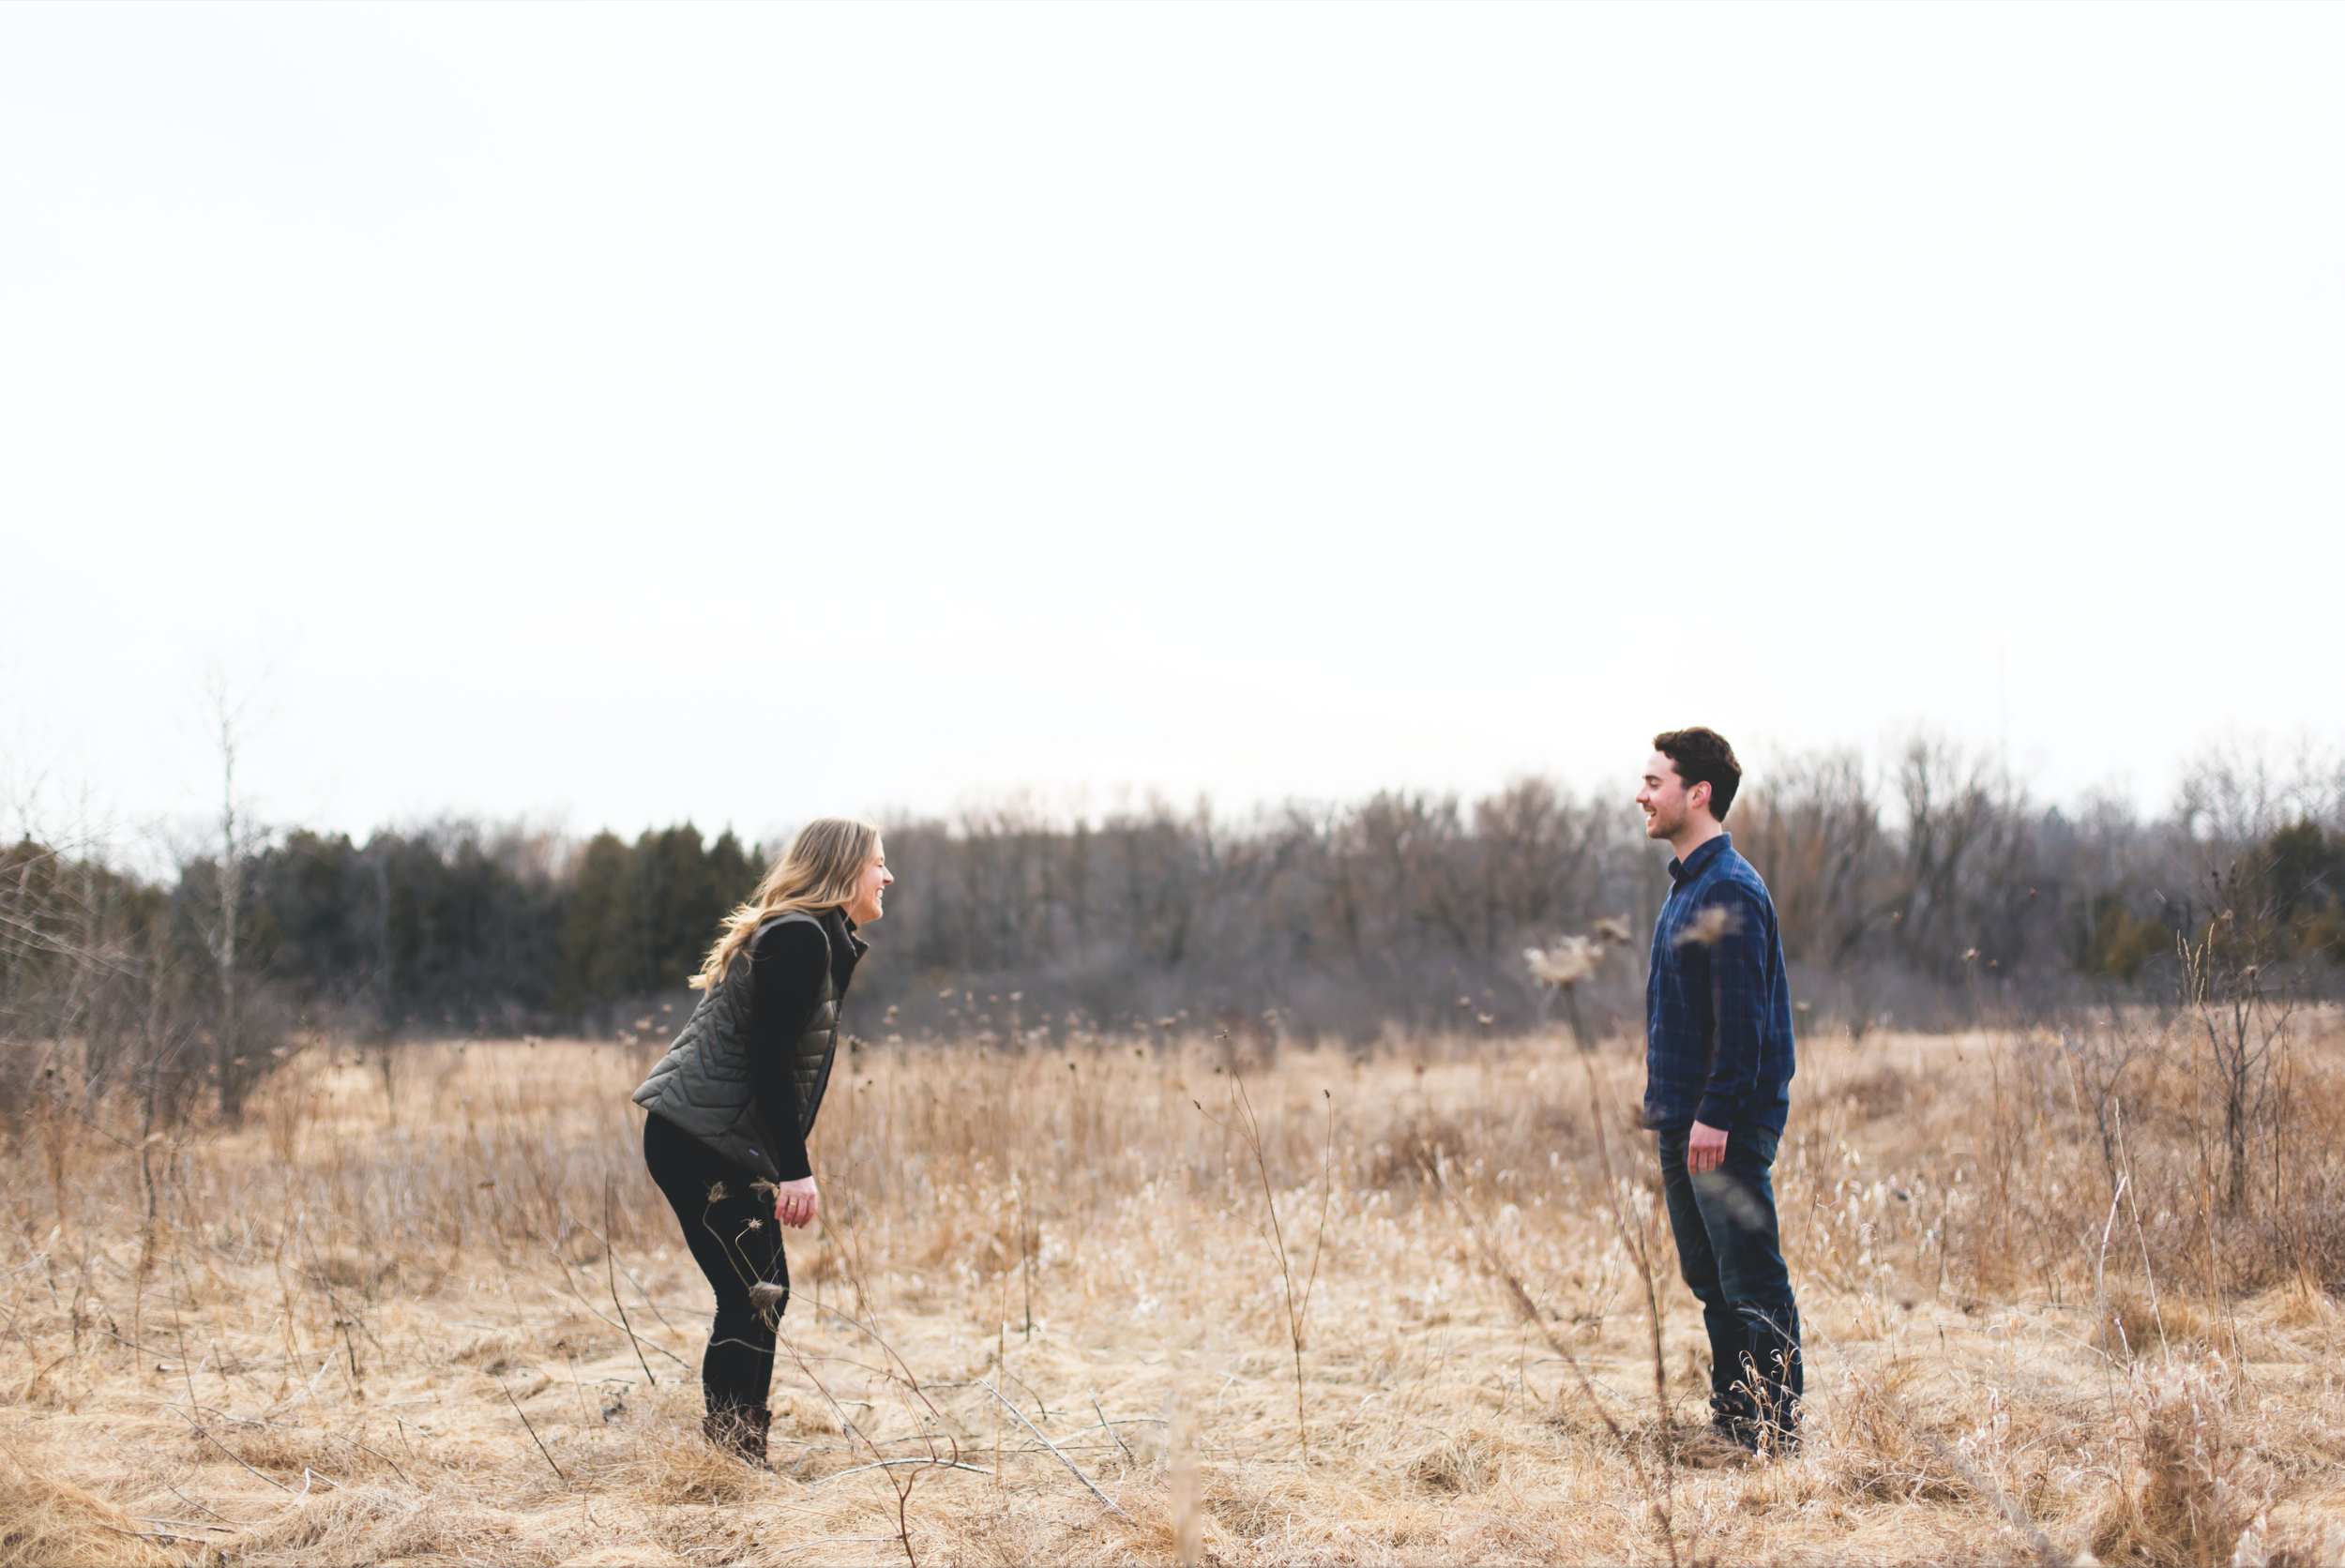 Engagement-Session-Photographer-Guelph-Lake-Hamilton-Toronto-Niagara-Photography-Moments-by-Lauren-Photo-Image-8.png